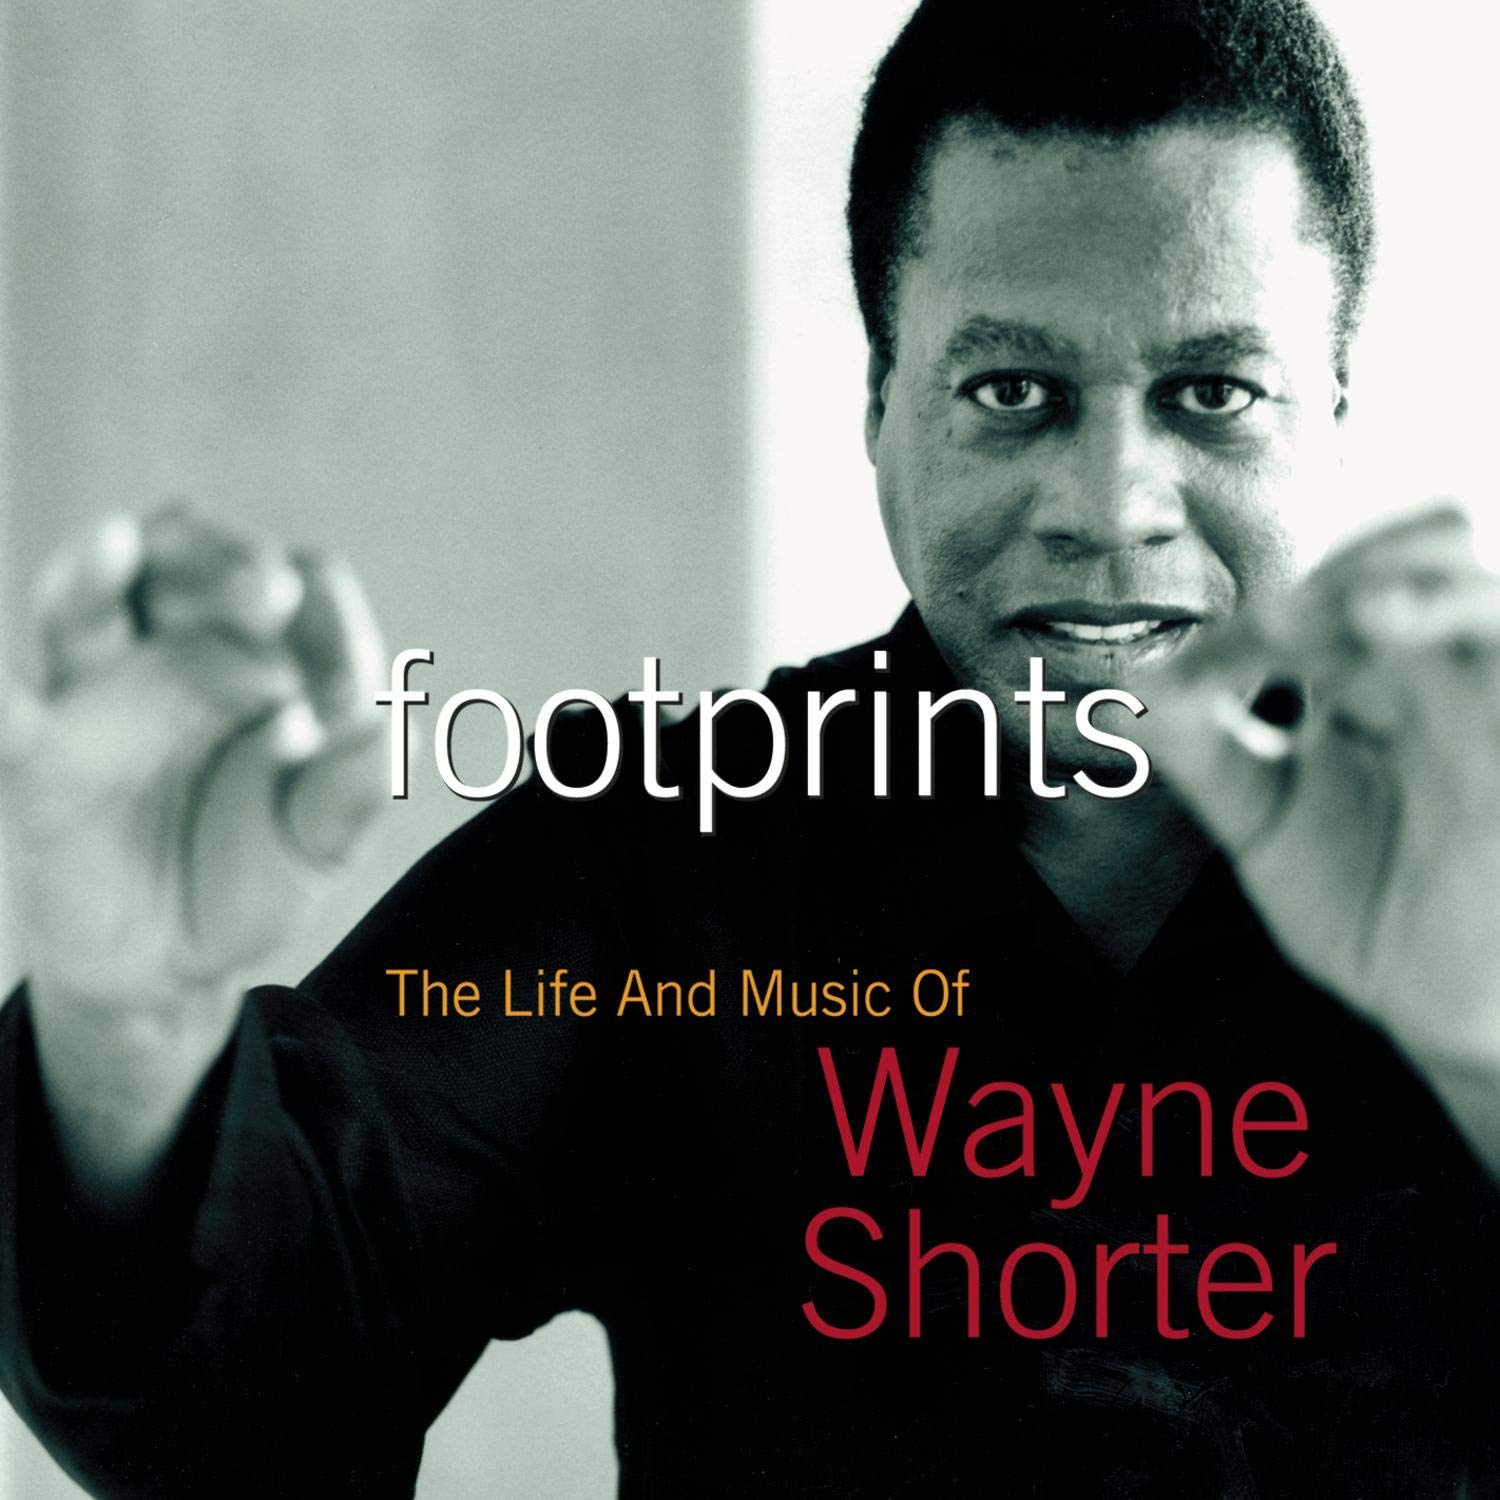 Footprints: The Life and Music of Wayne Shorter by Sony Legacy